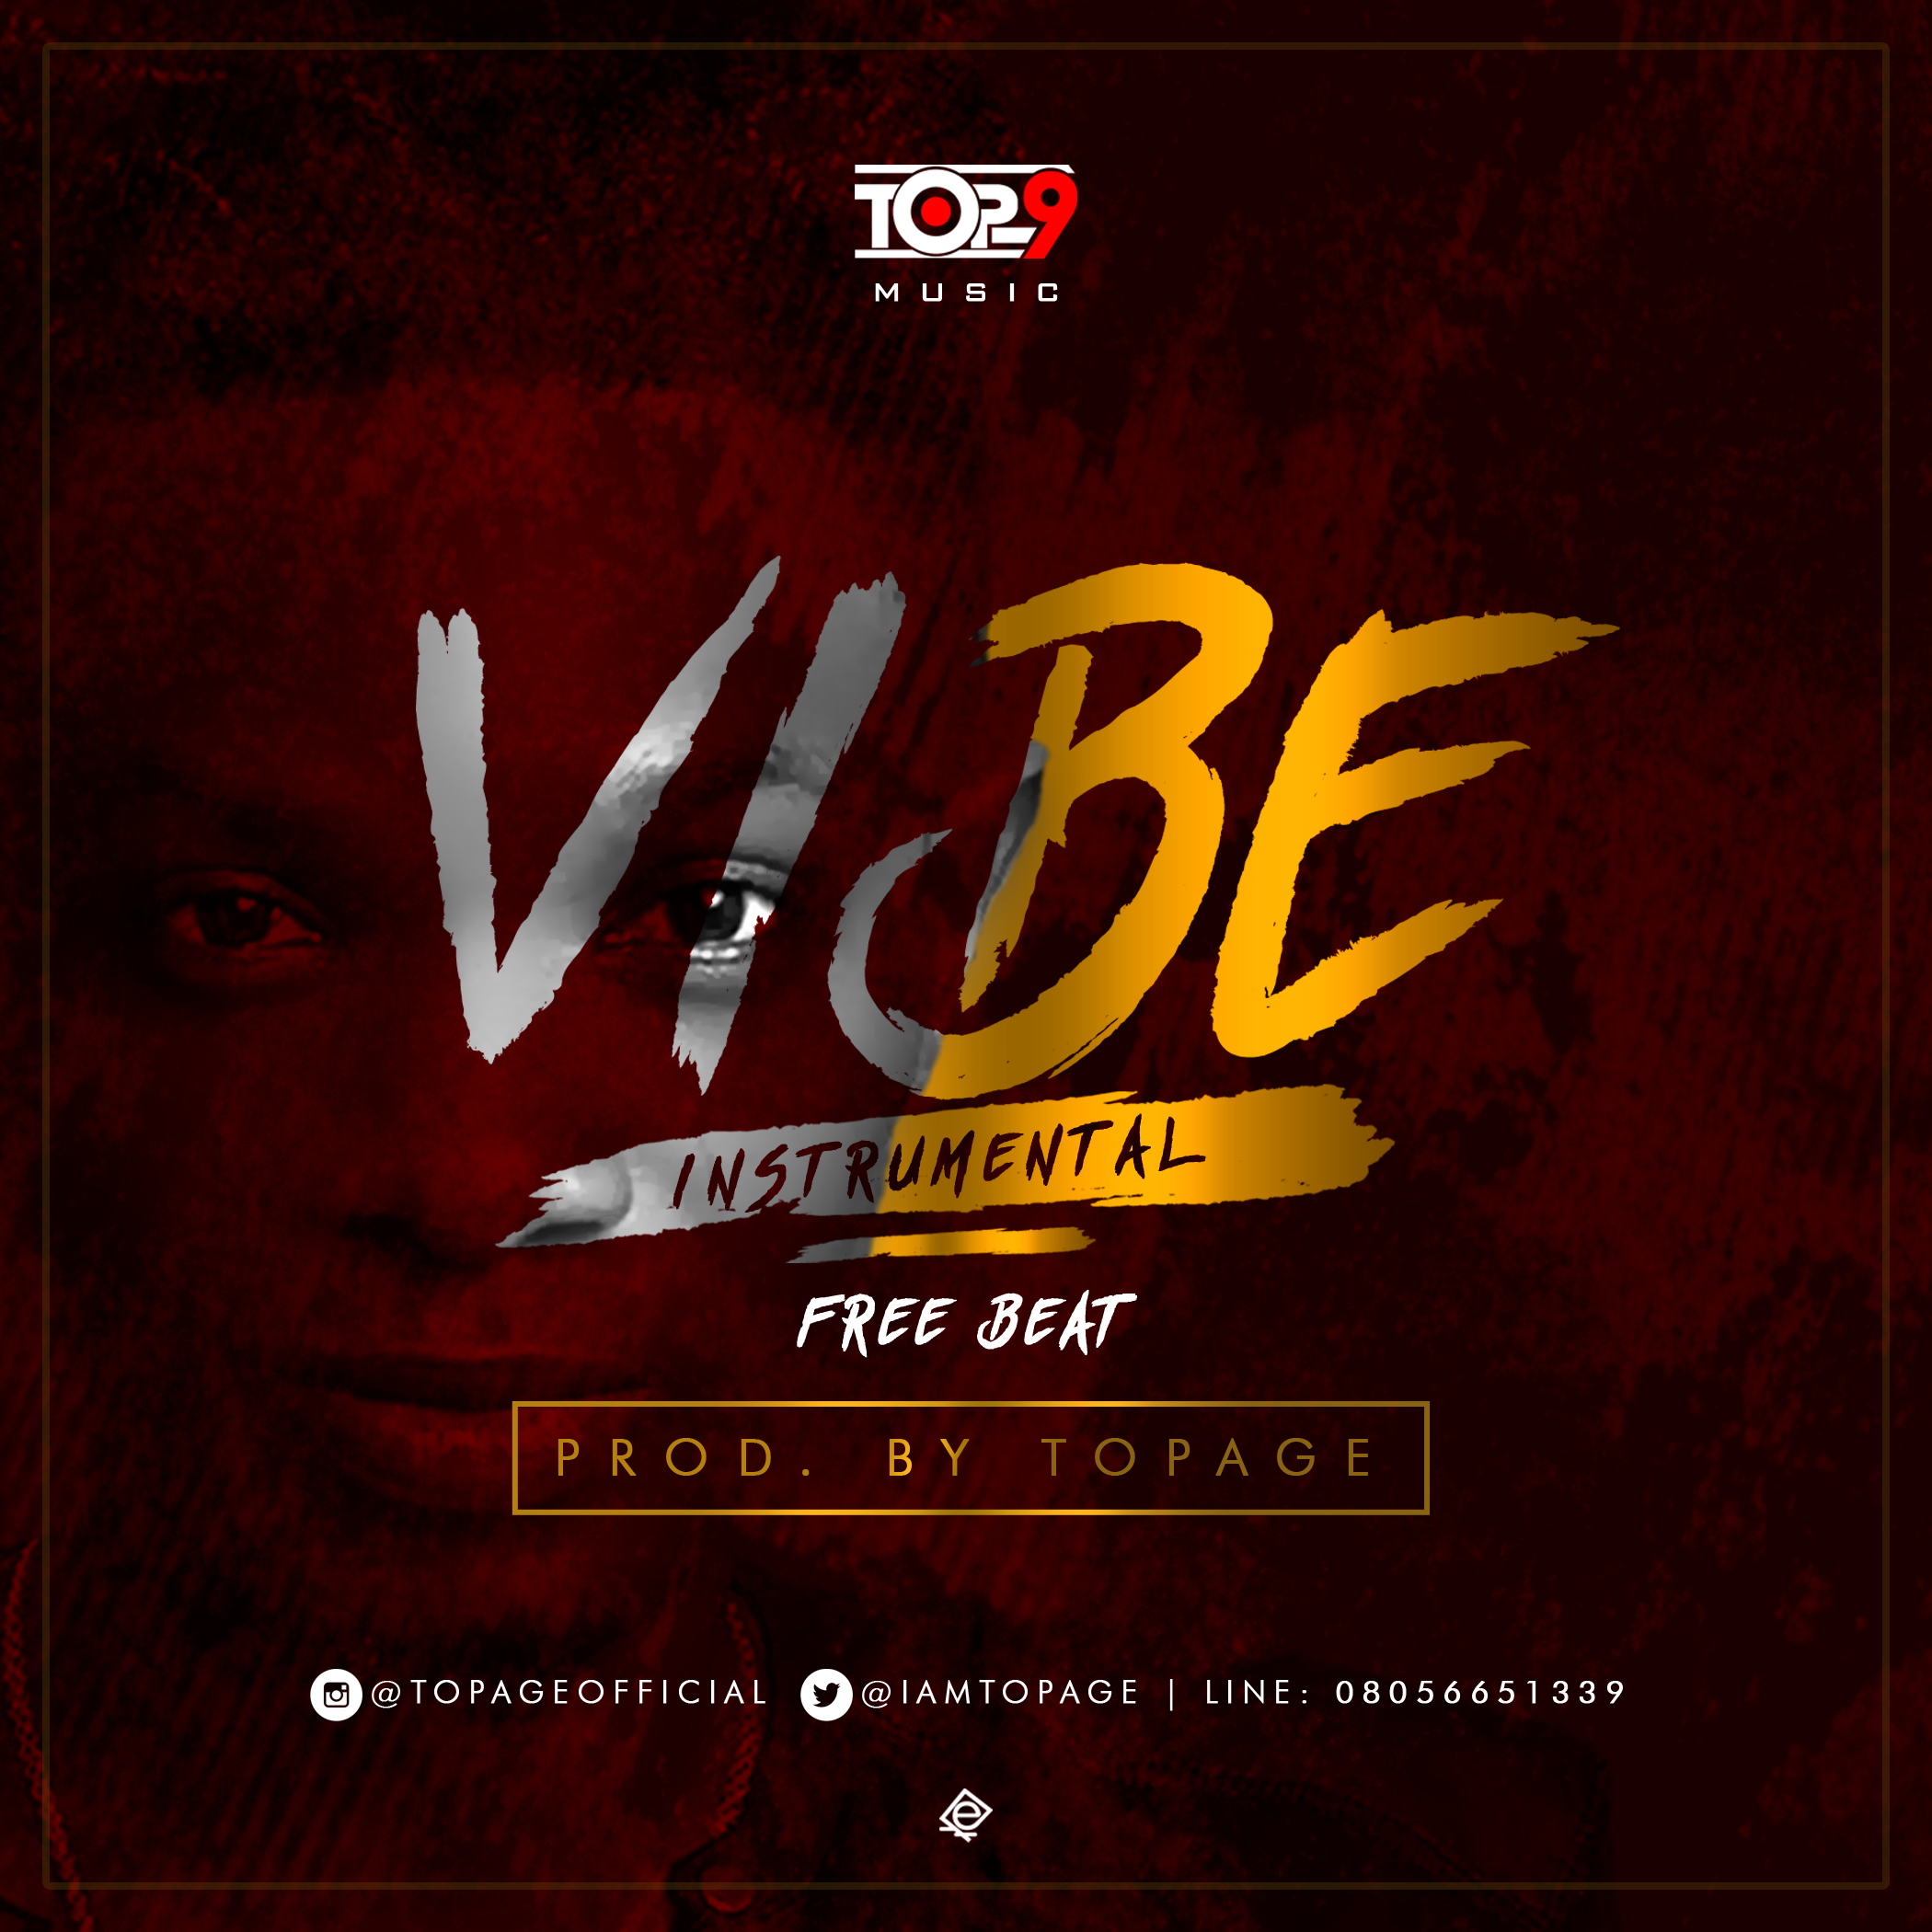 Download Freebeat:- Vibe (Prod By Topage) - 9jaflaver